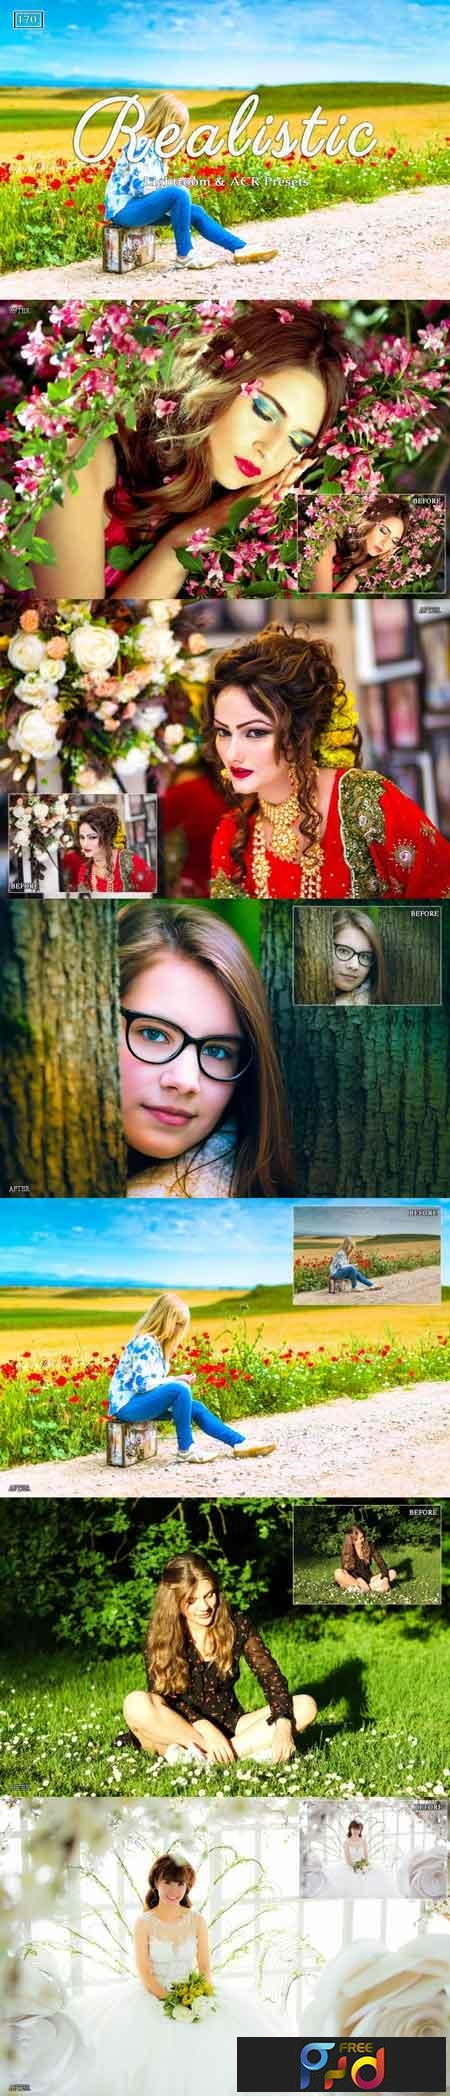 Realistic Lr and ACR Presets 3514565 1